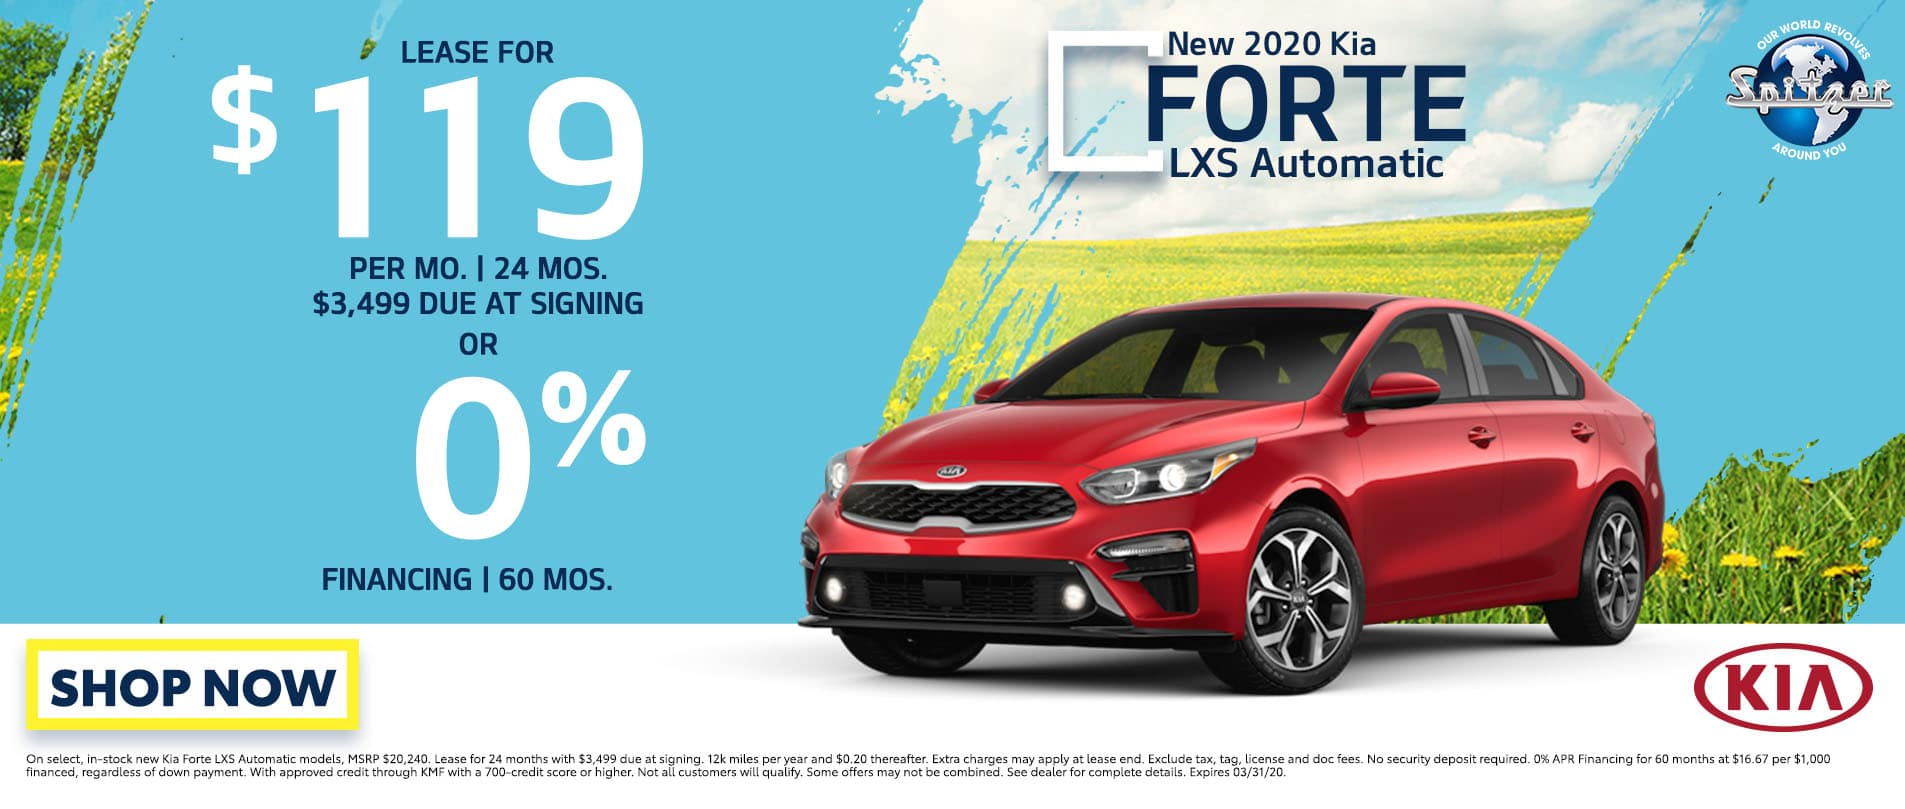 Forte   lease for $119 per mo